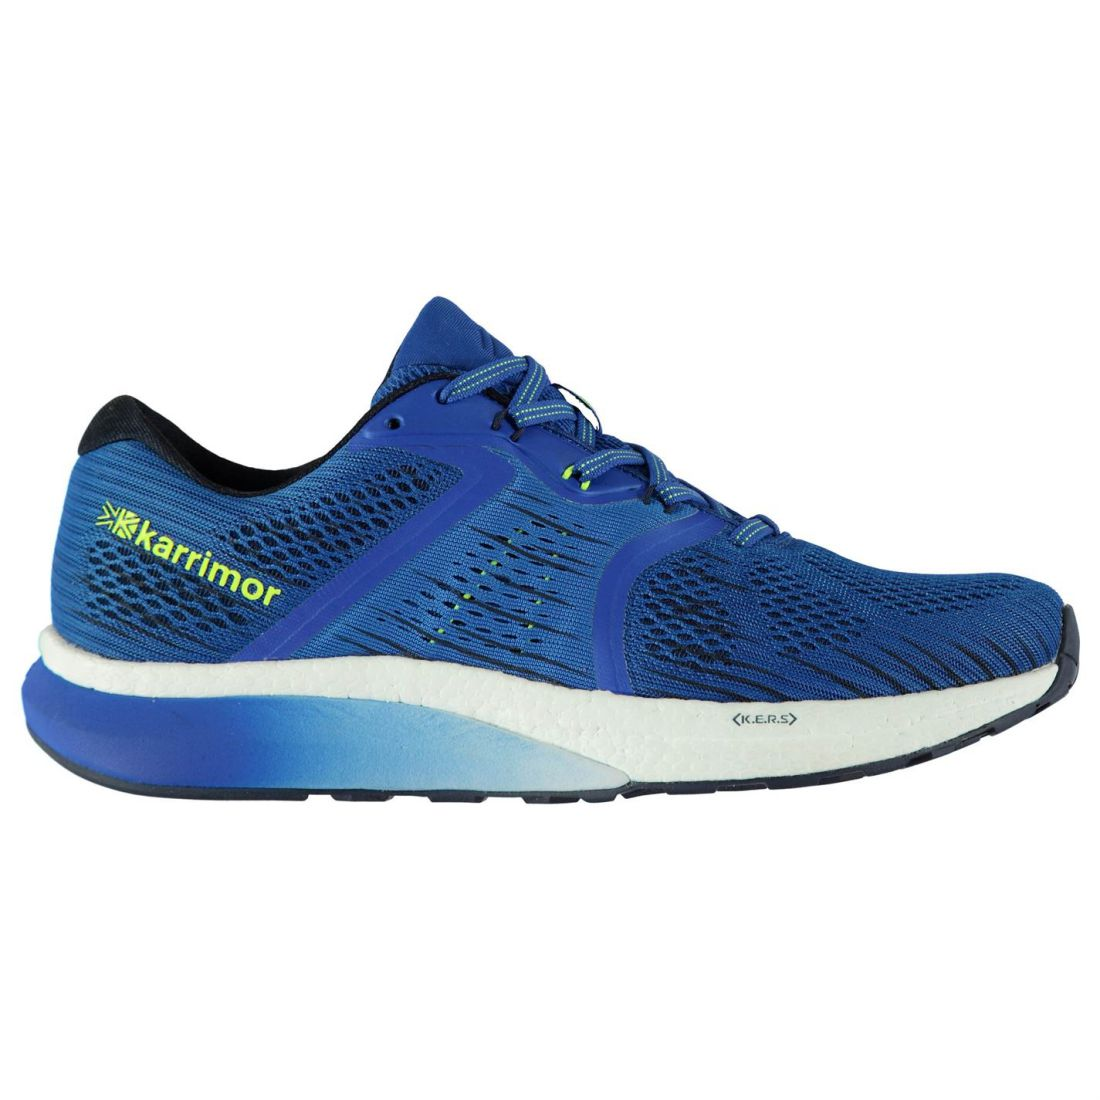 3cce07f918a Mens Excel Running shoes Road Karrimor 3 nzqqzz3285-Men